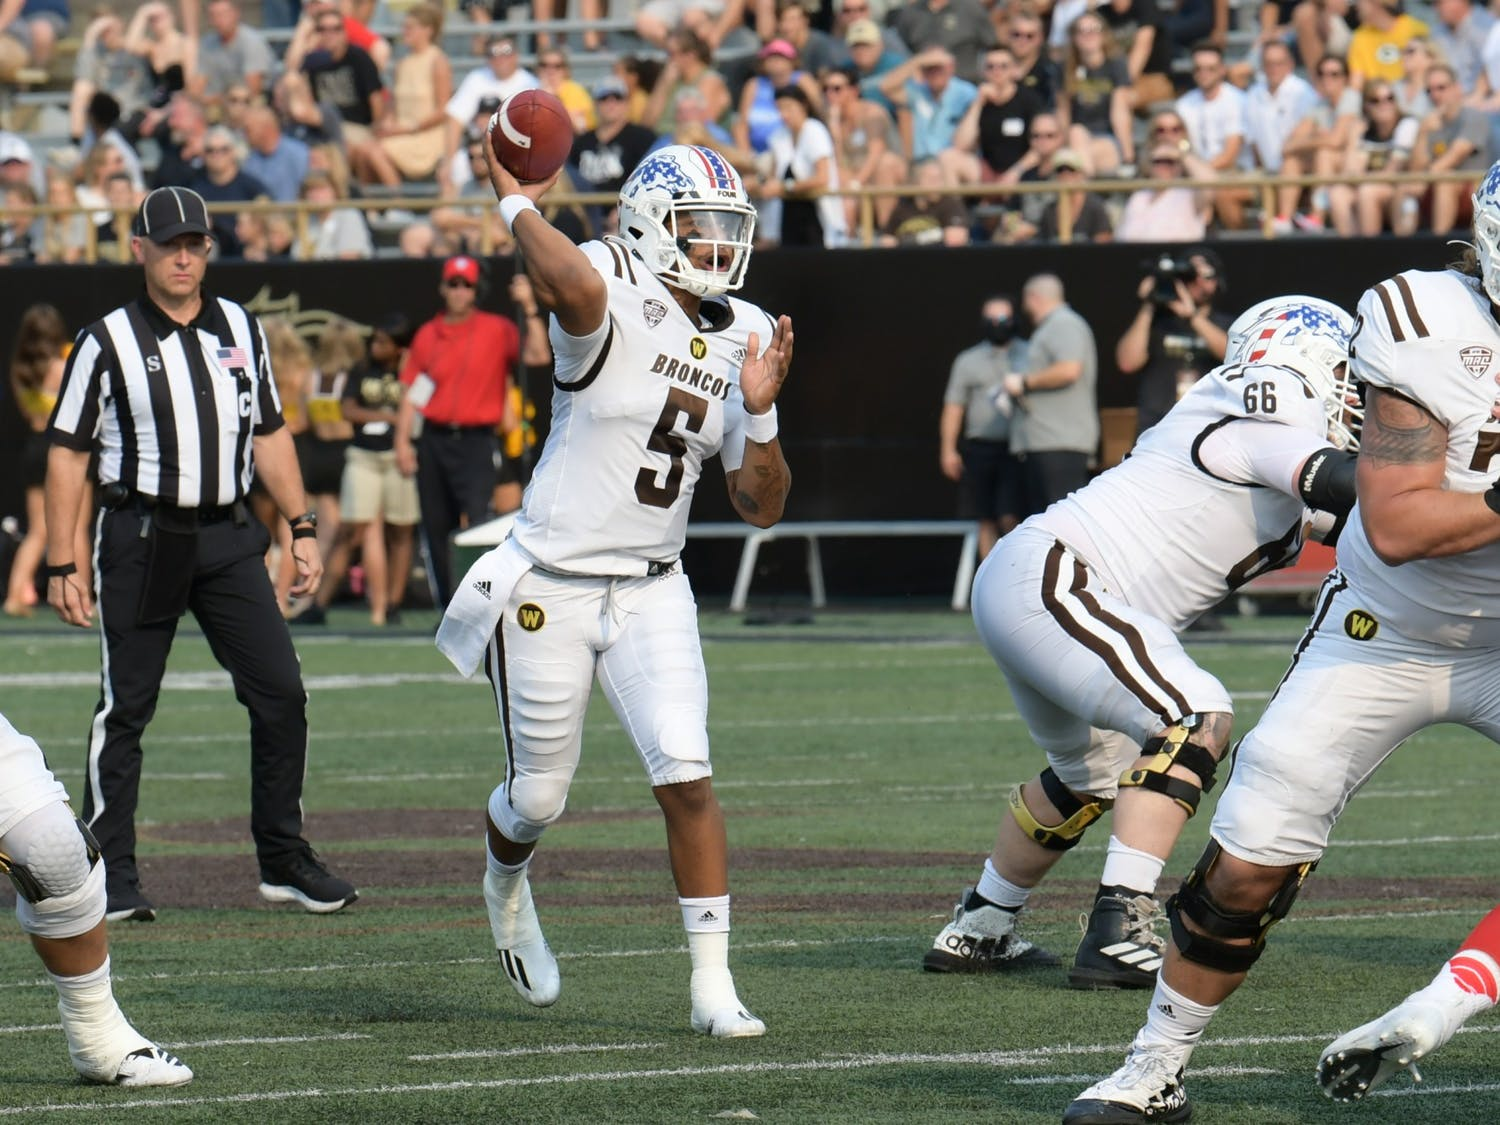 The Bulls will host the Western Michigan Broncos Saturday afternoon UB Stadium for their homecoming game.